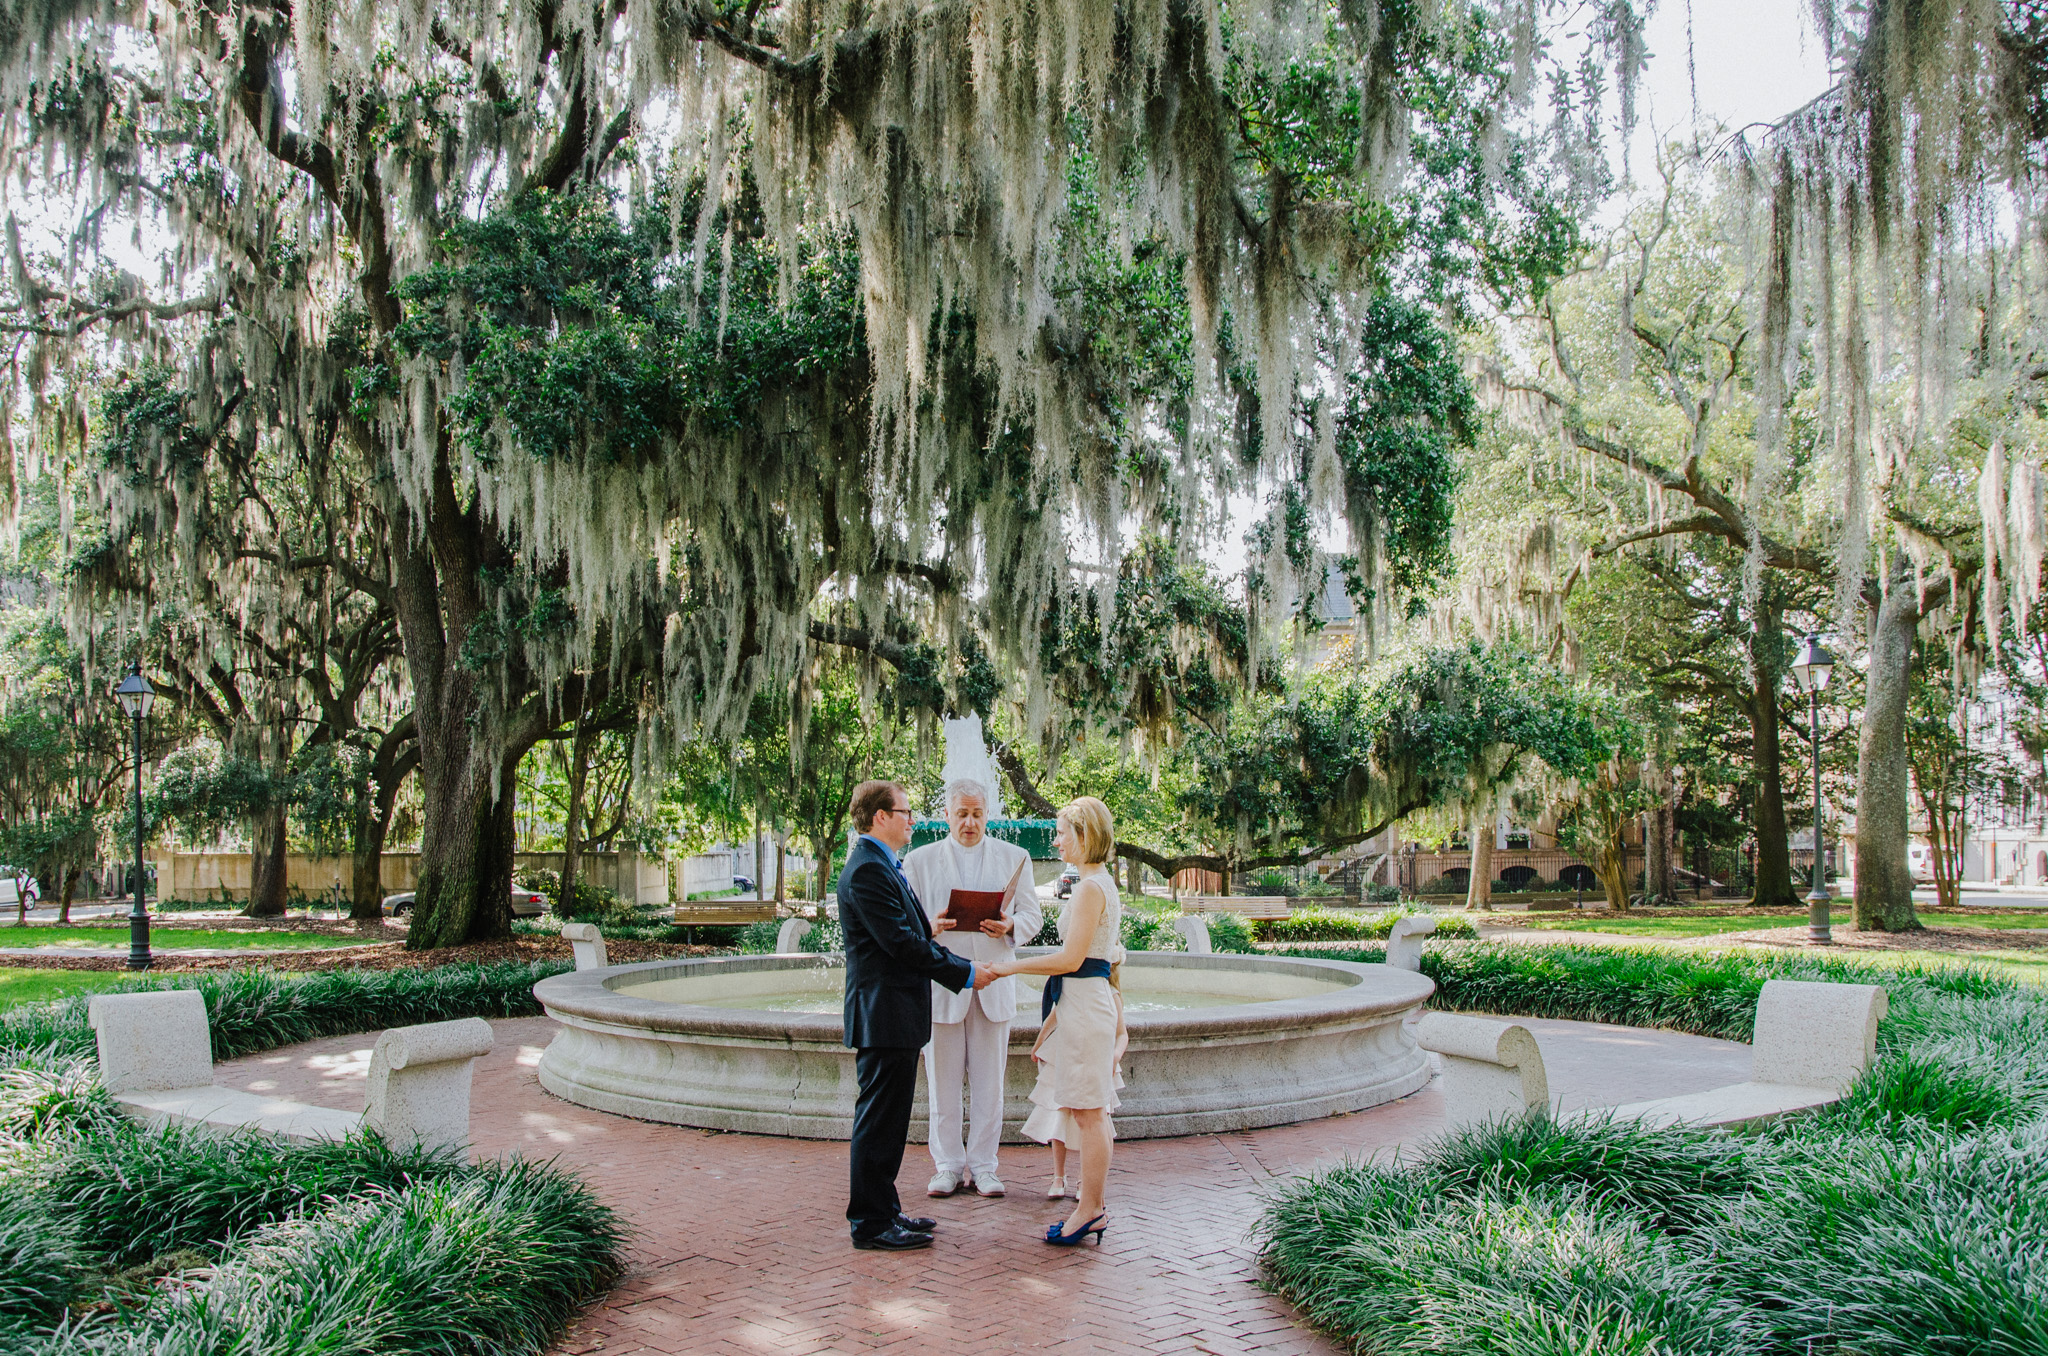 Rachael and Andy | Savannah, GA Elopement